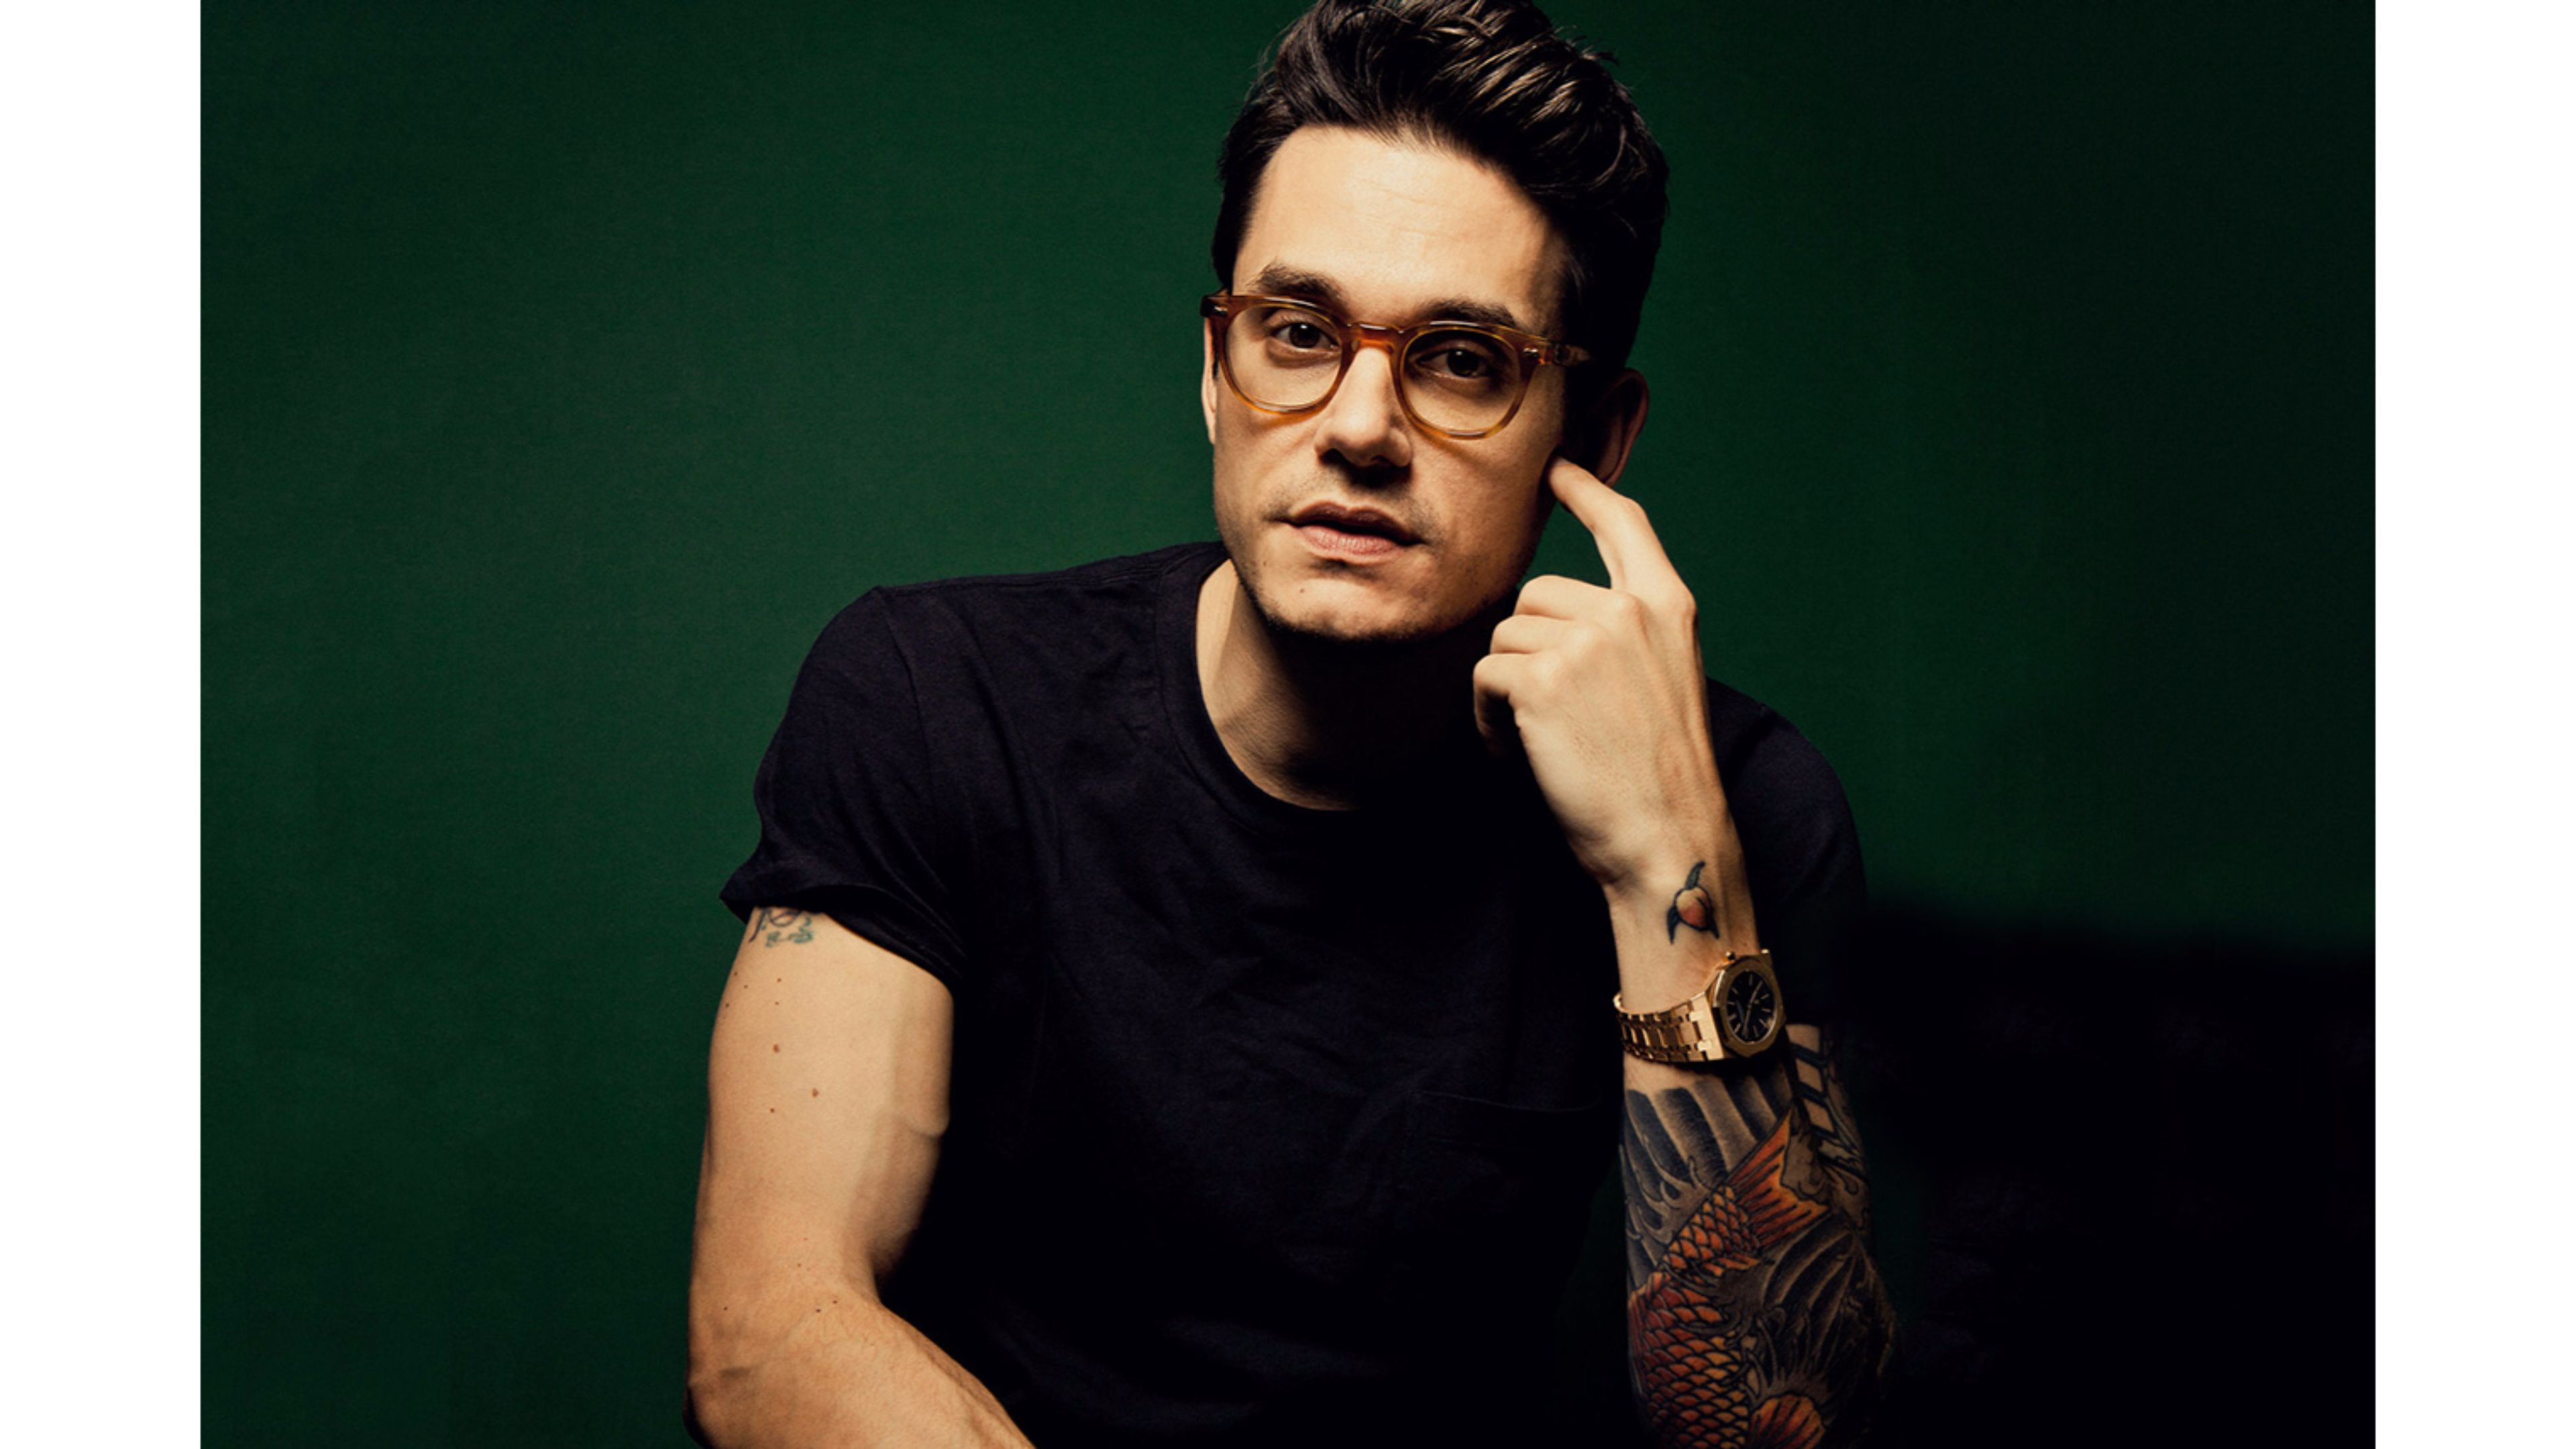 John Mayer Wallpaper: 3840x2160px John Mayer Wallpaper